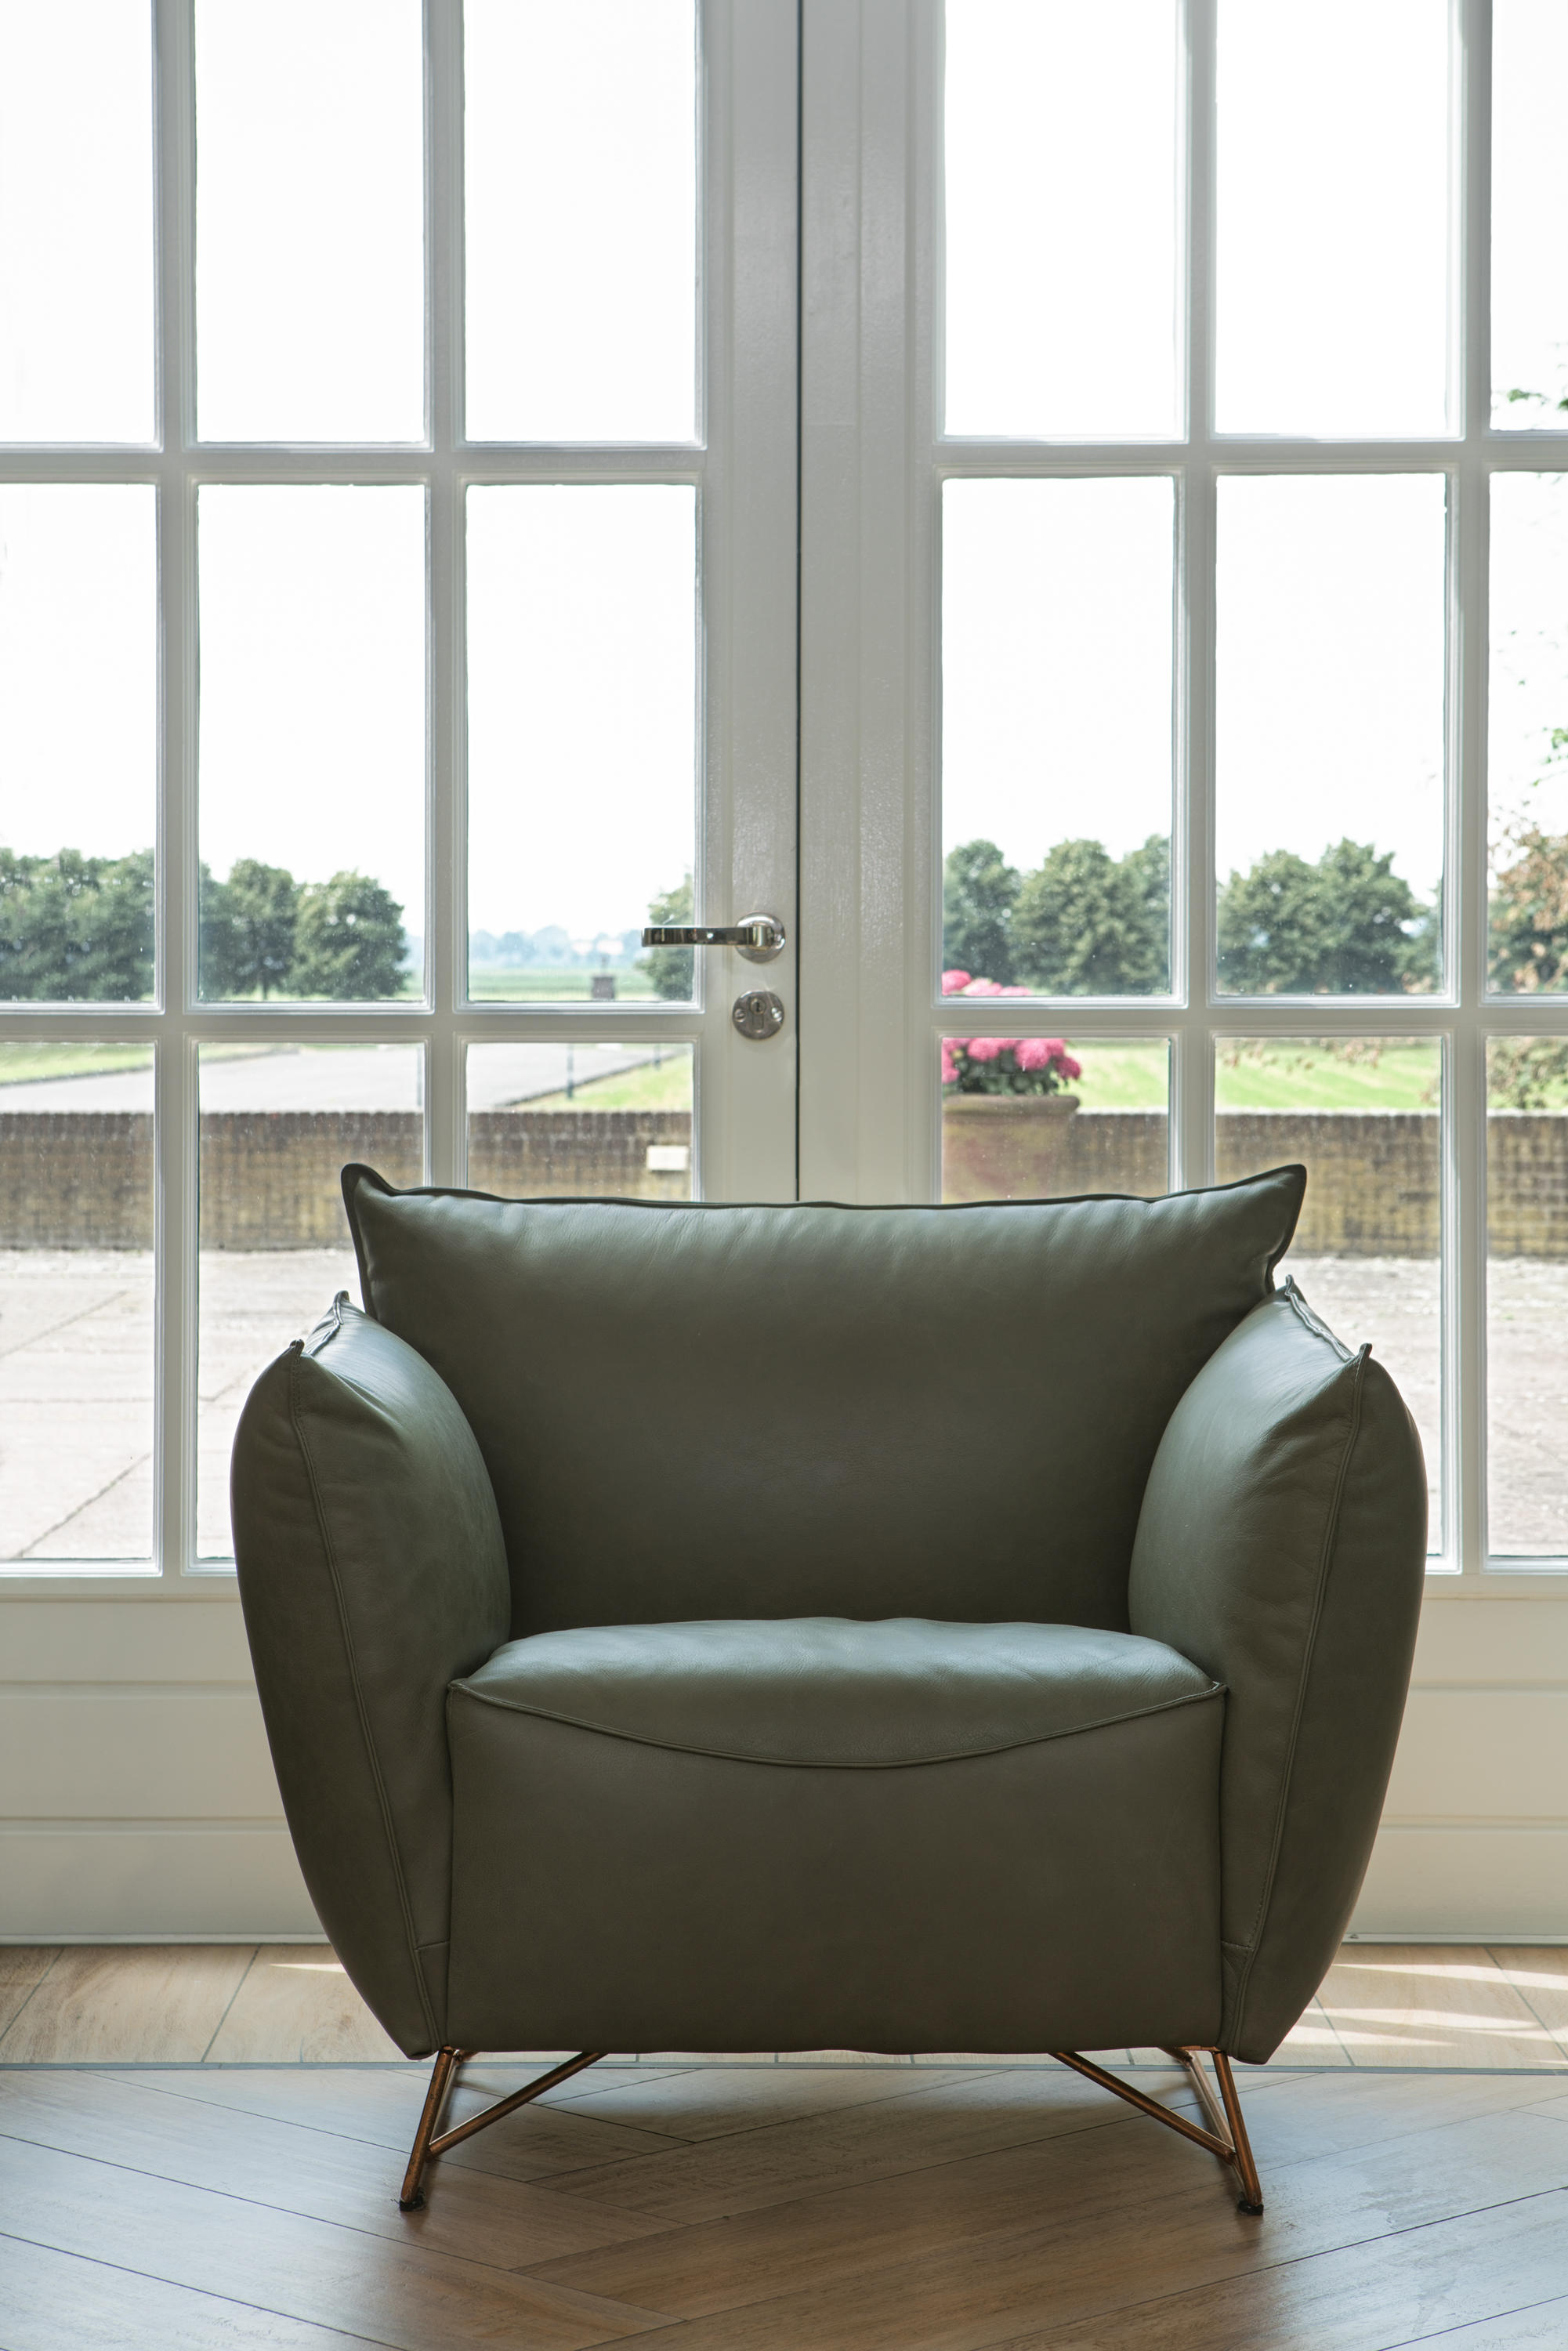 CASA MIA XL - Lounge chairs from Jess Design | Architonic